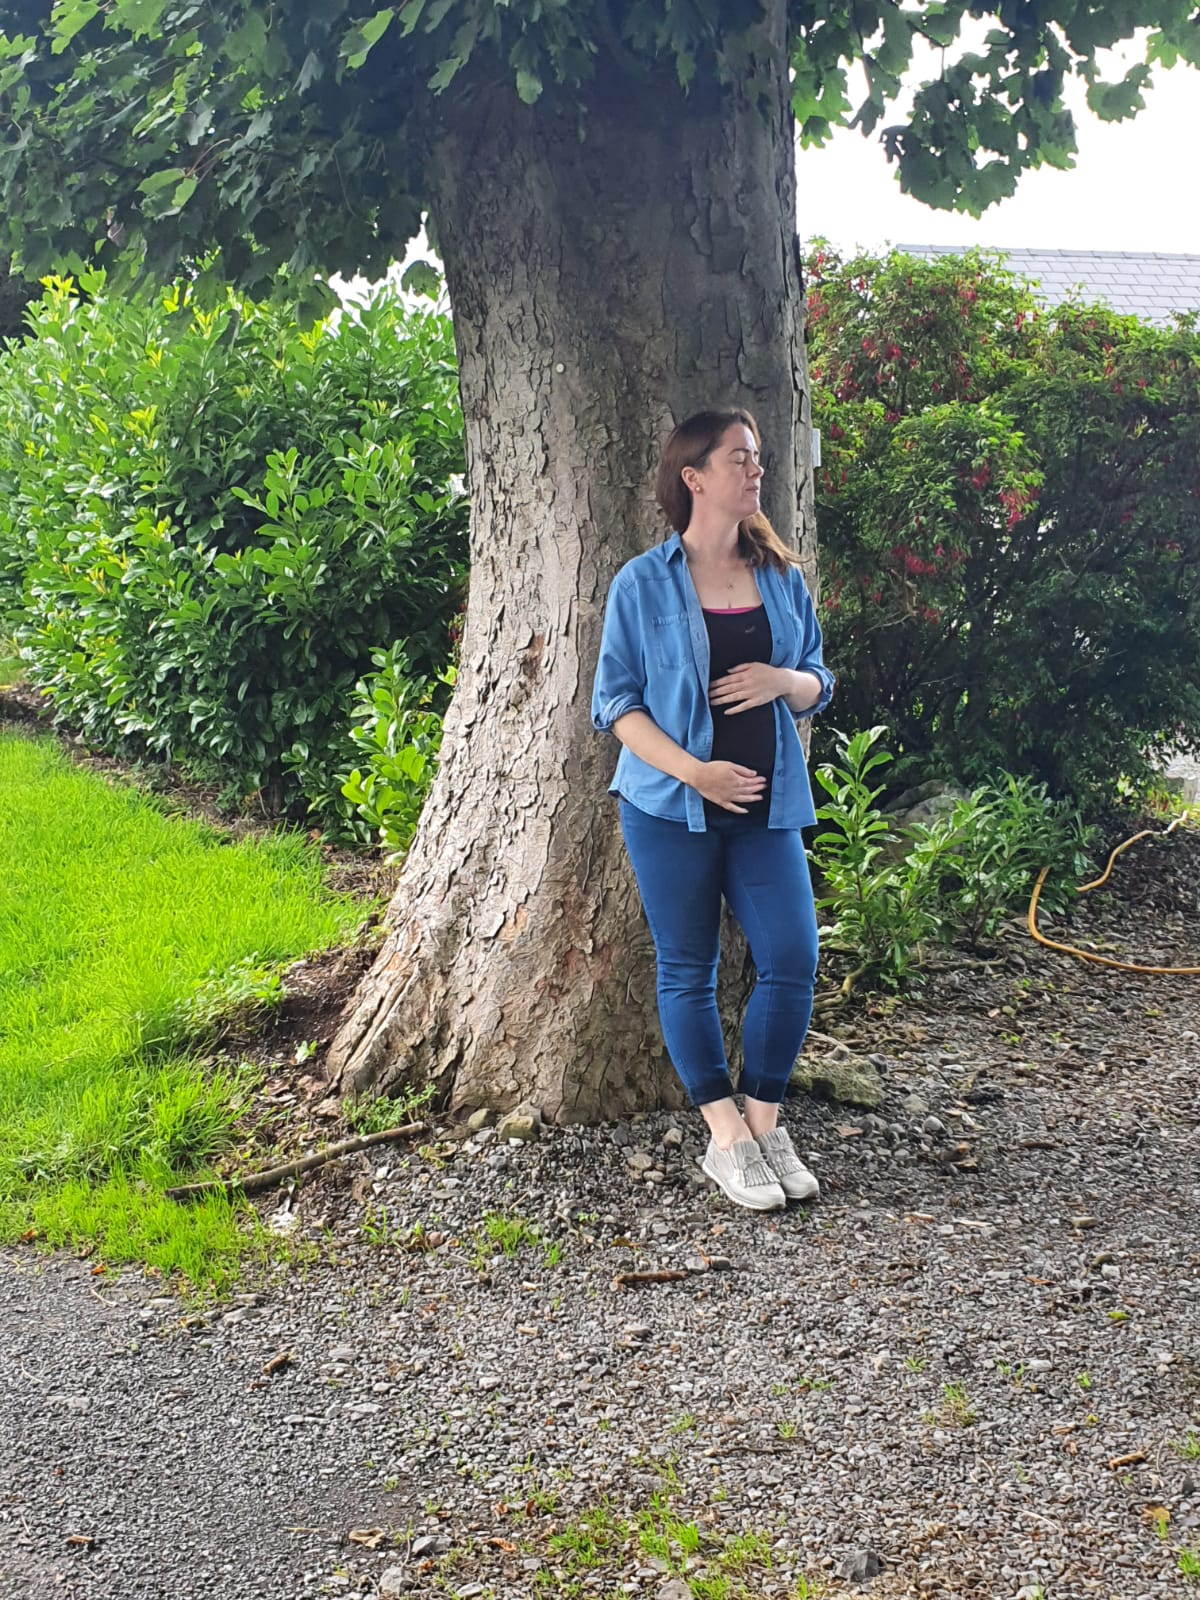 Leona grounding with tree during pregnancy